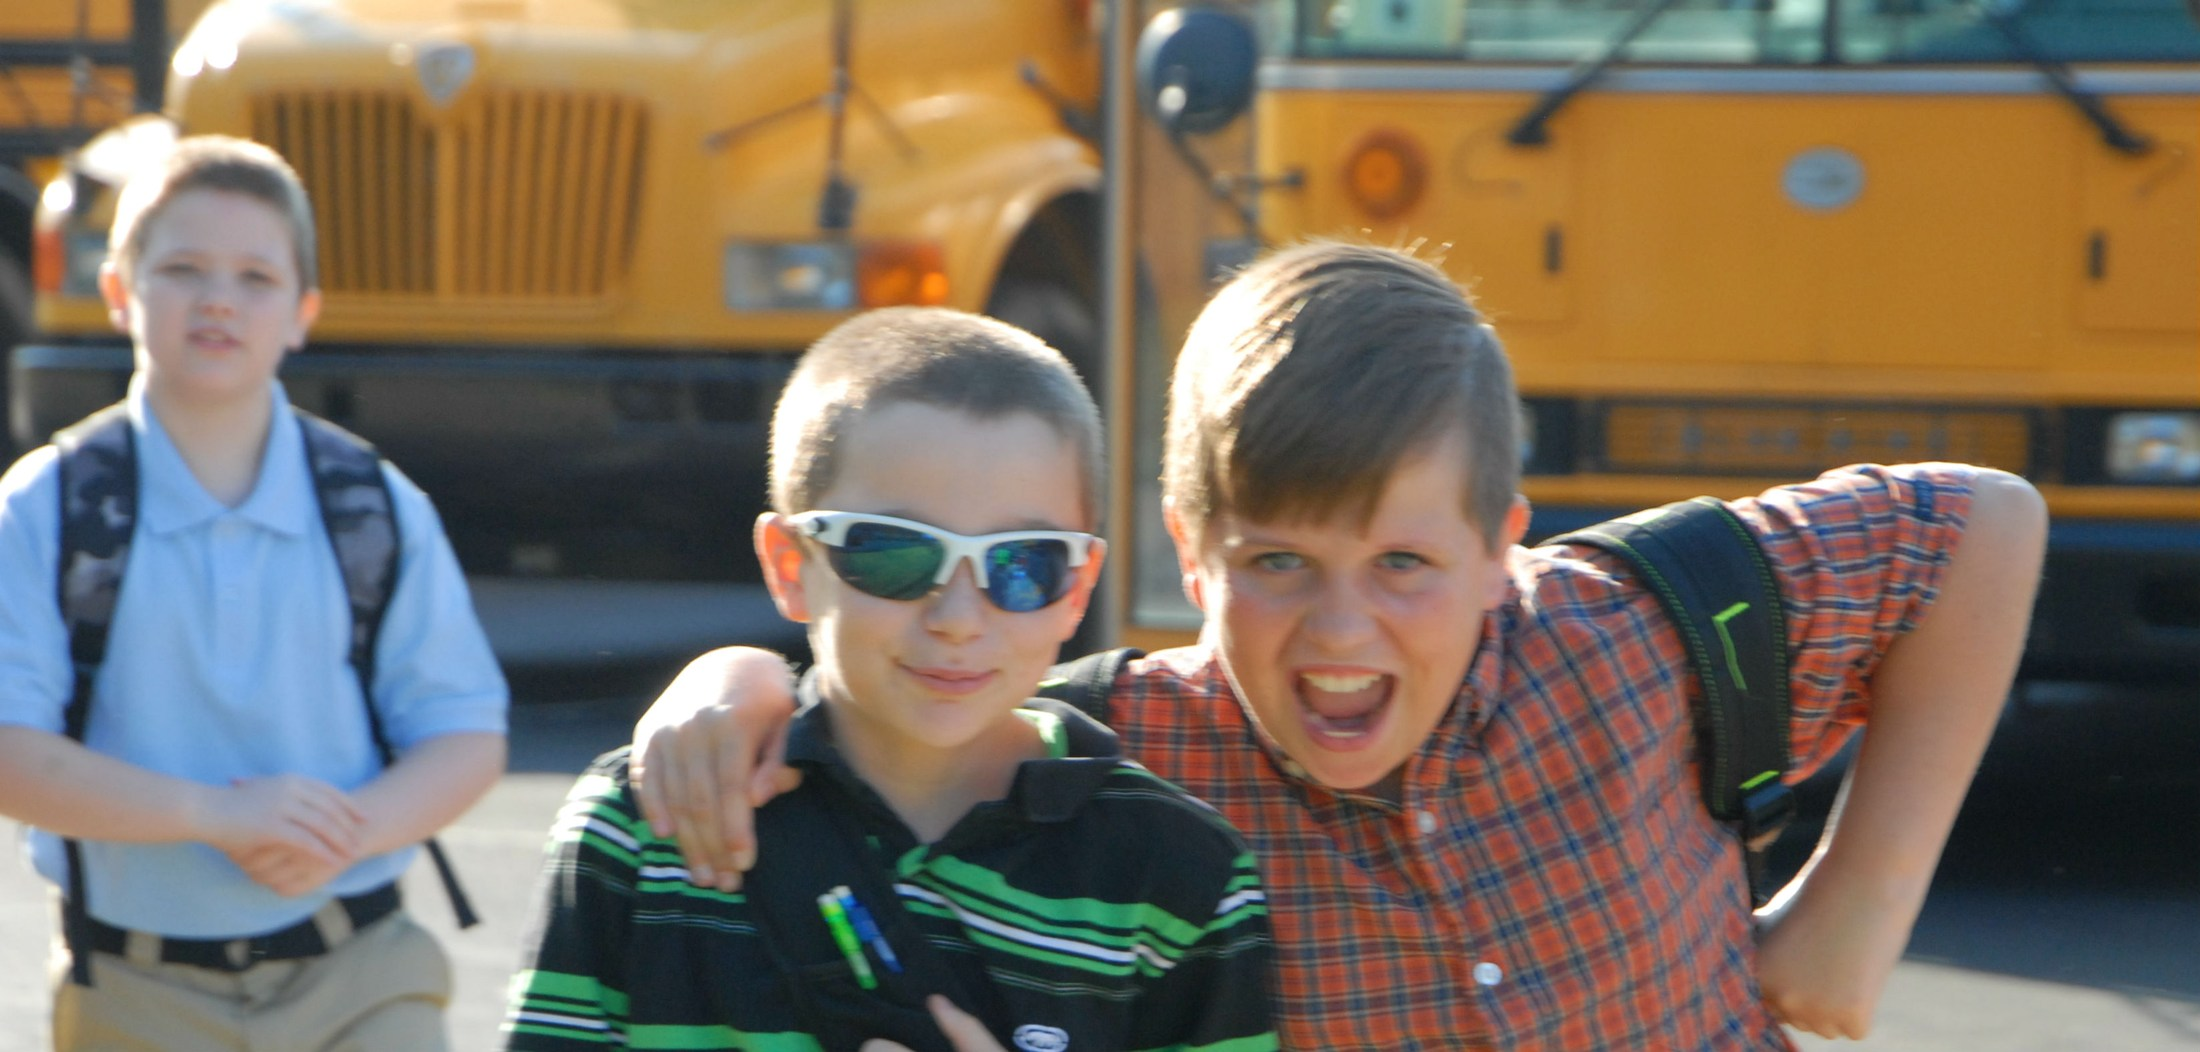 two boys posing in front of buses